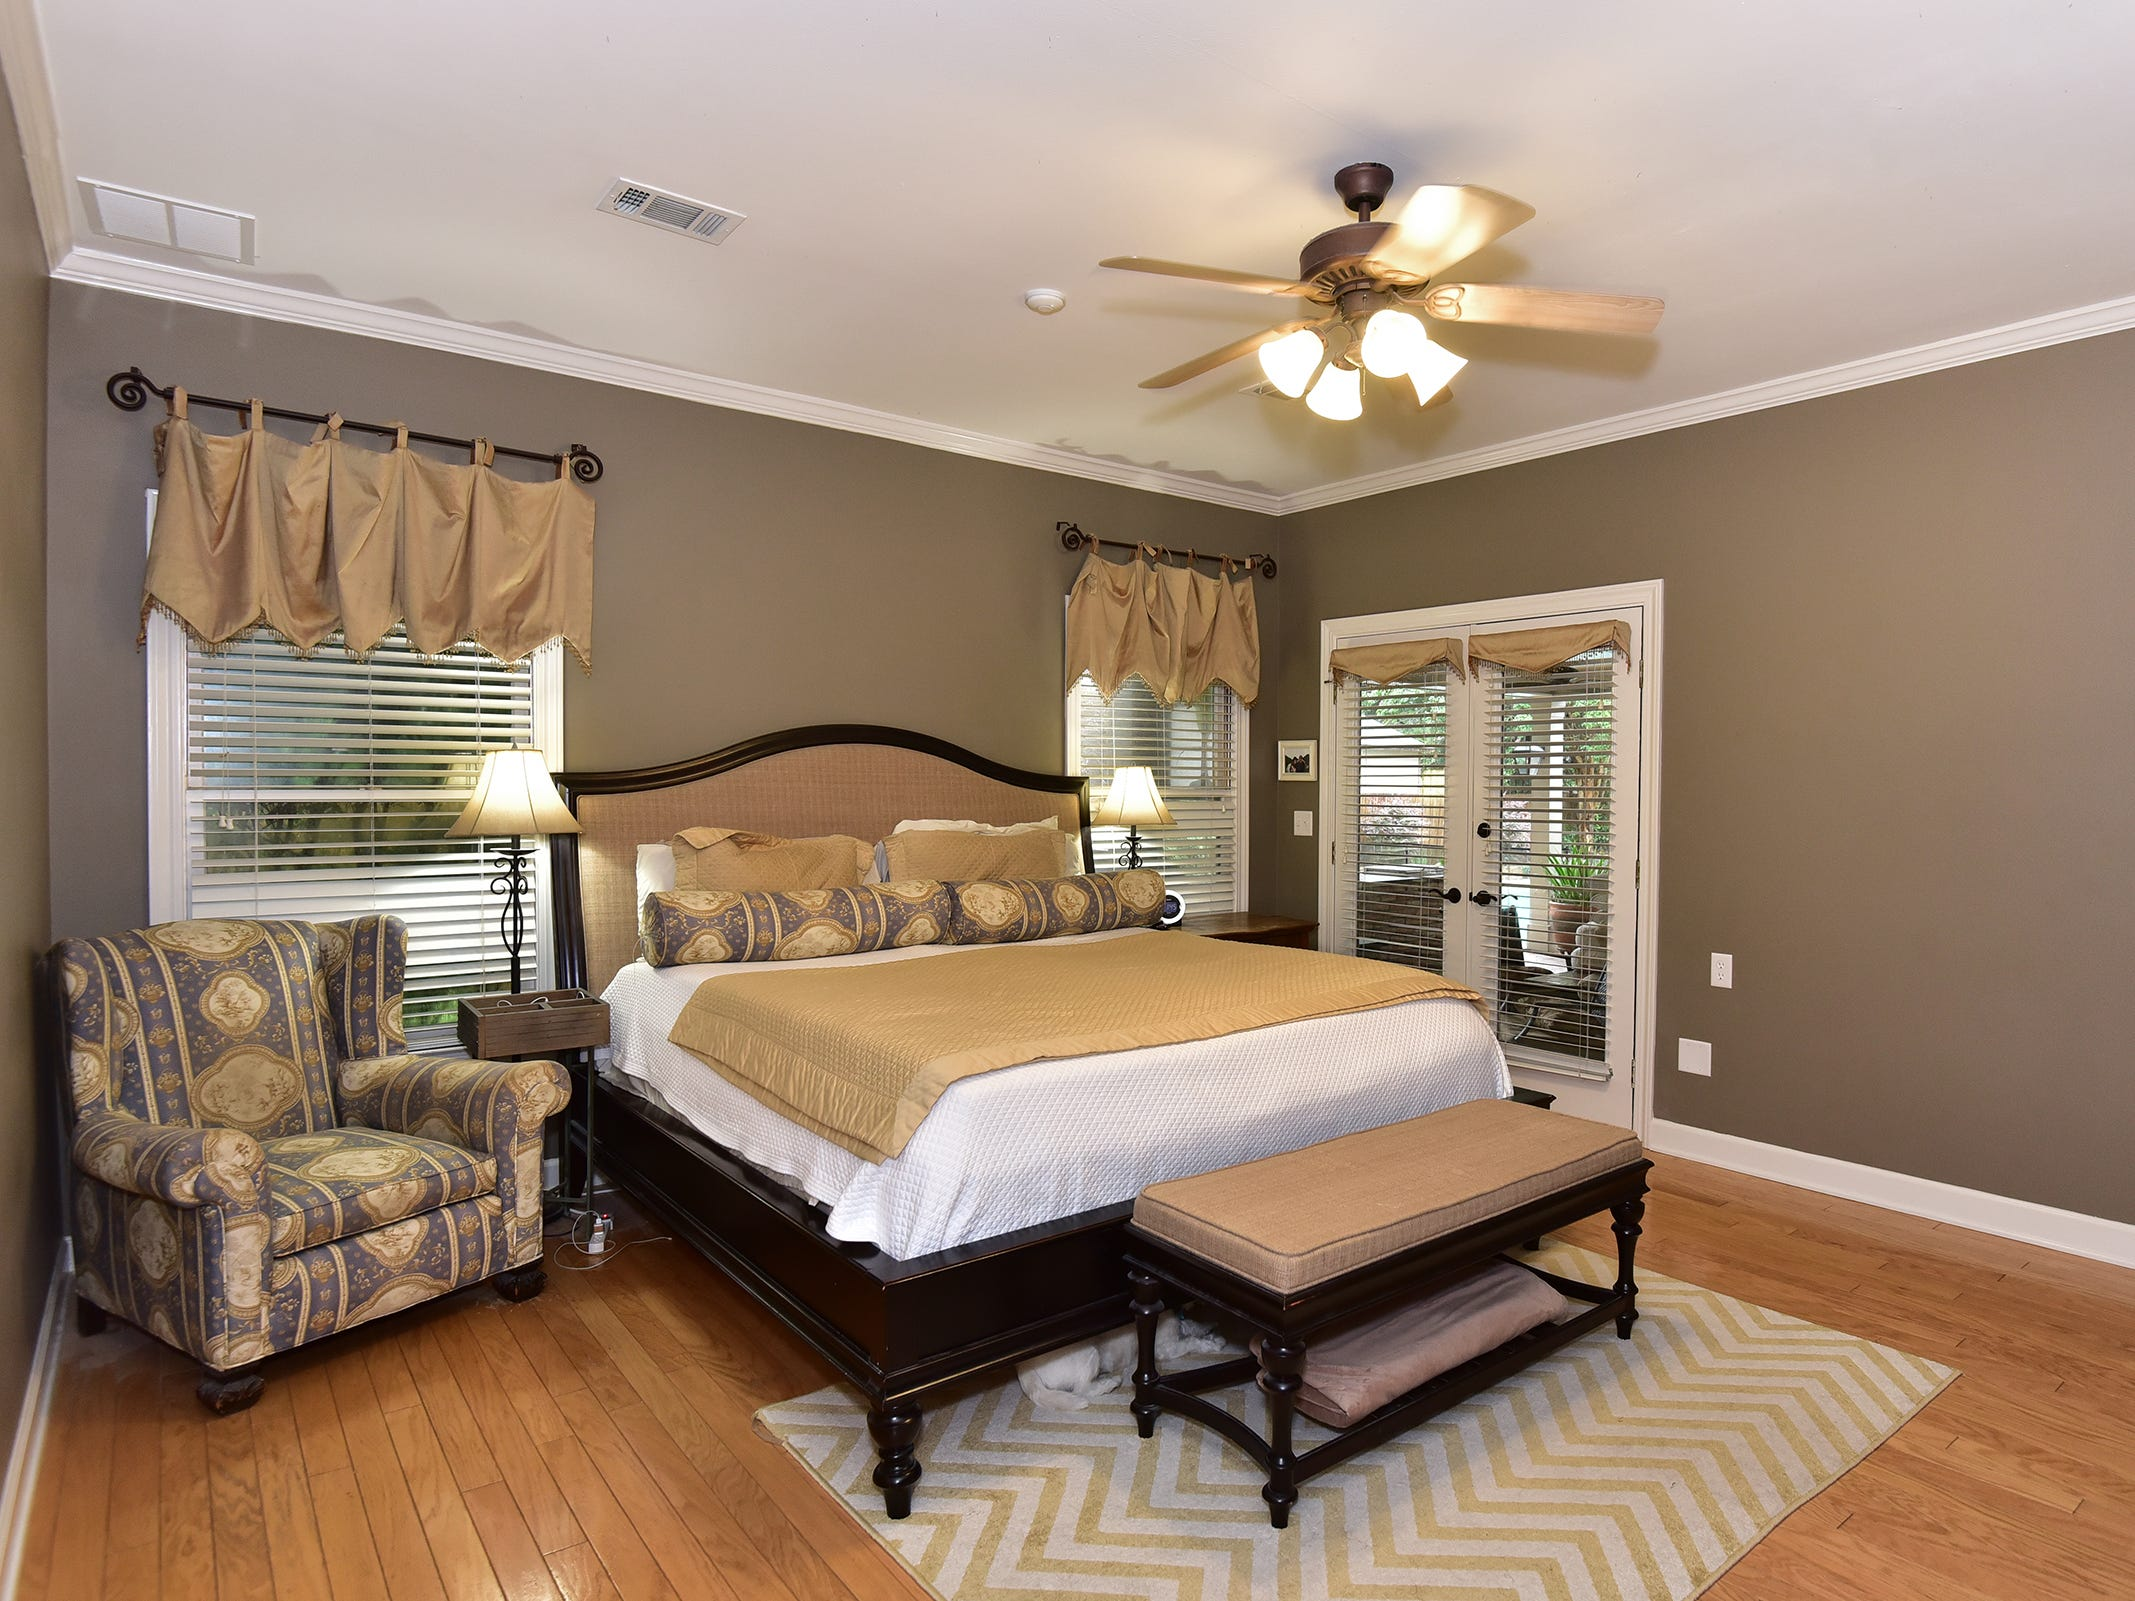 2474 Semur Rd., the spacious master bedroom.